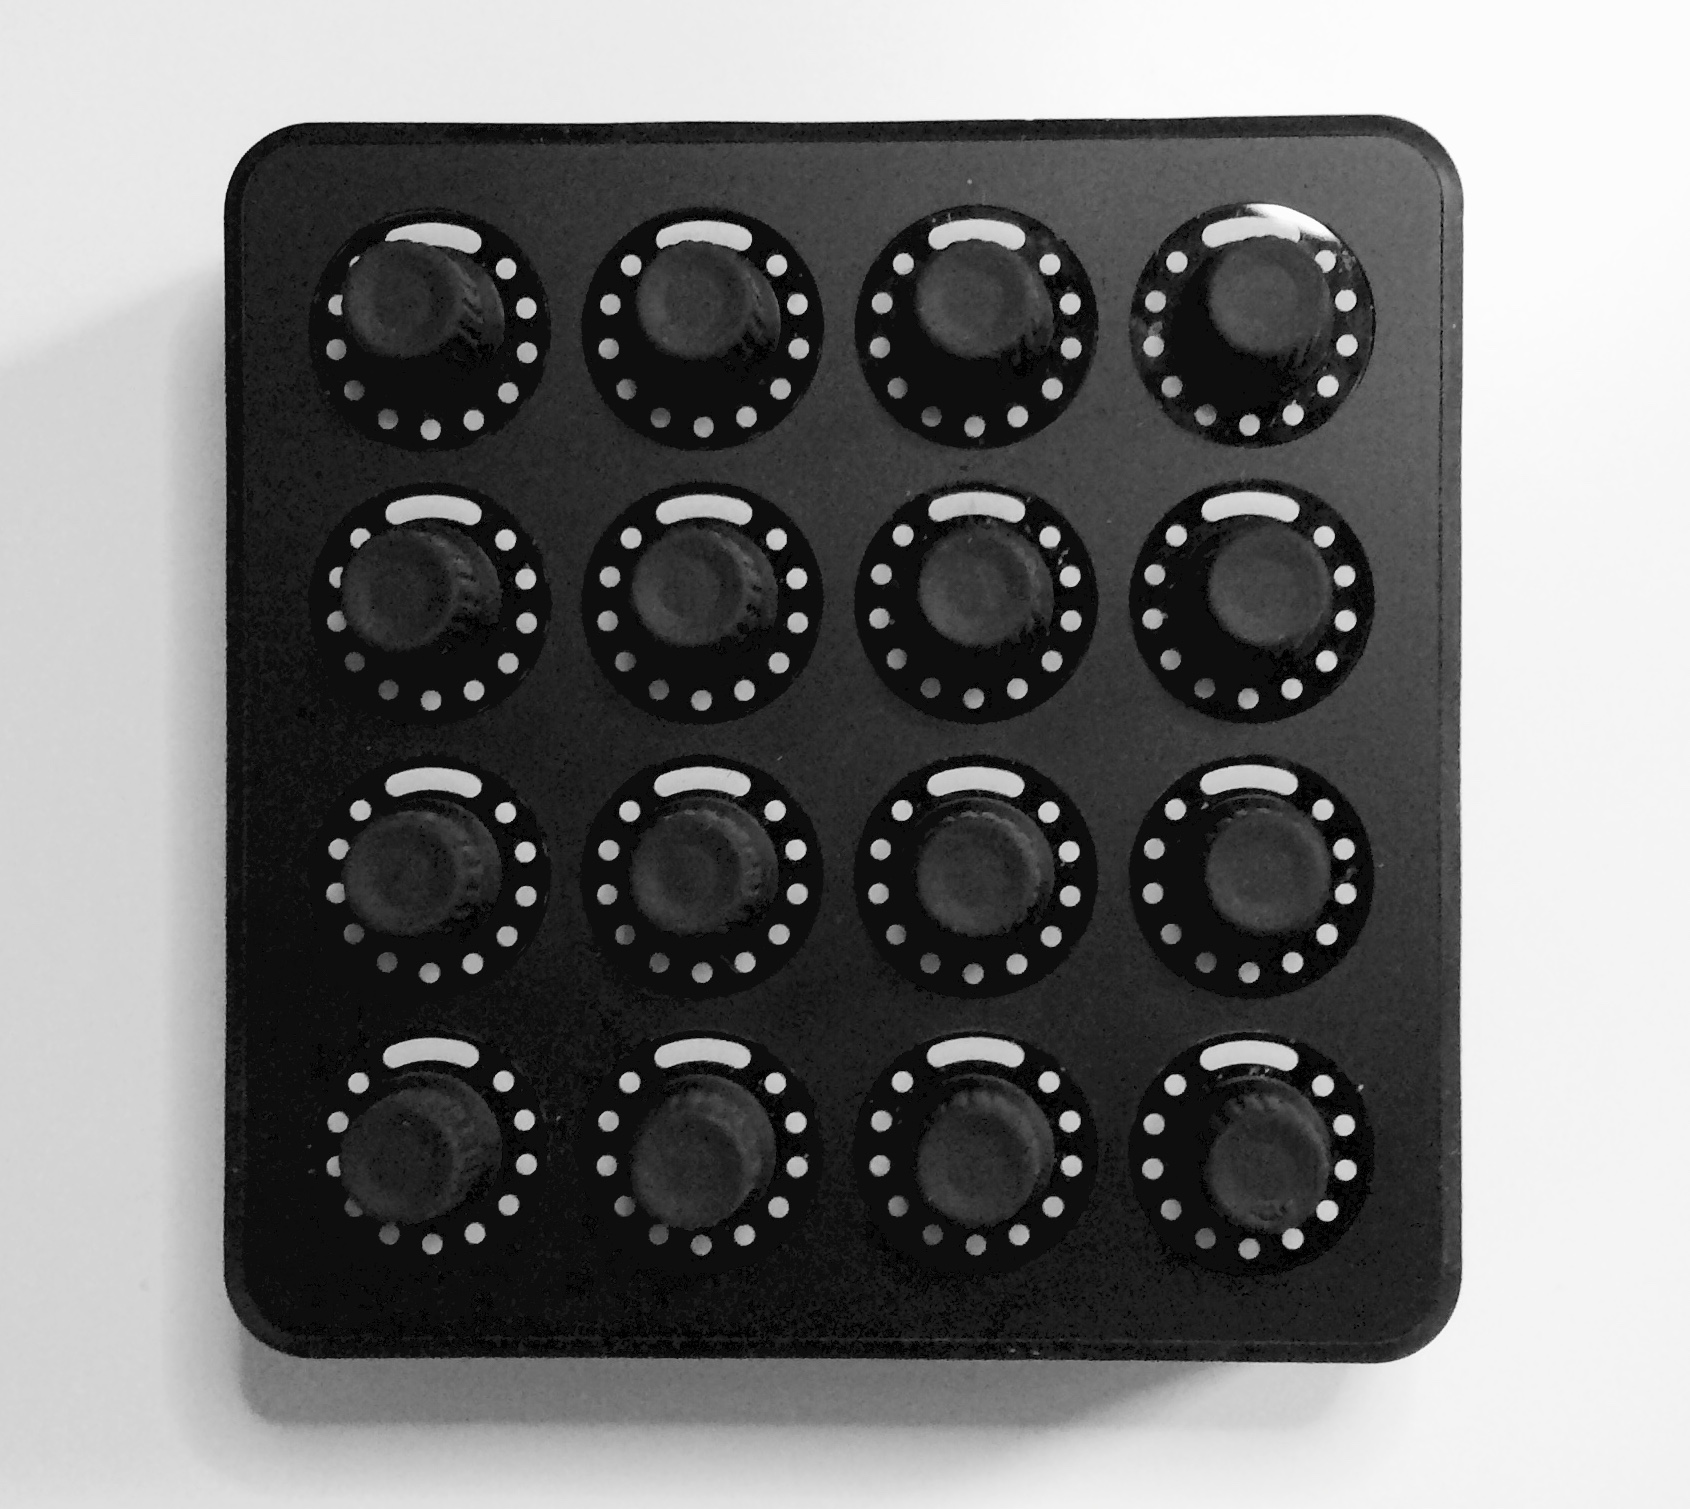 Midi fighter Twister product image